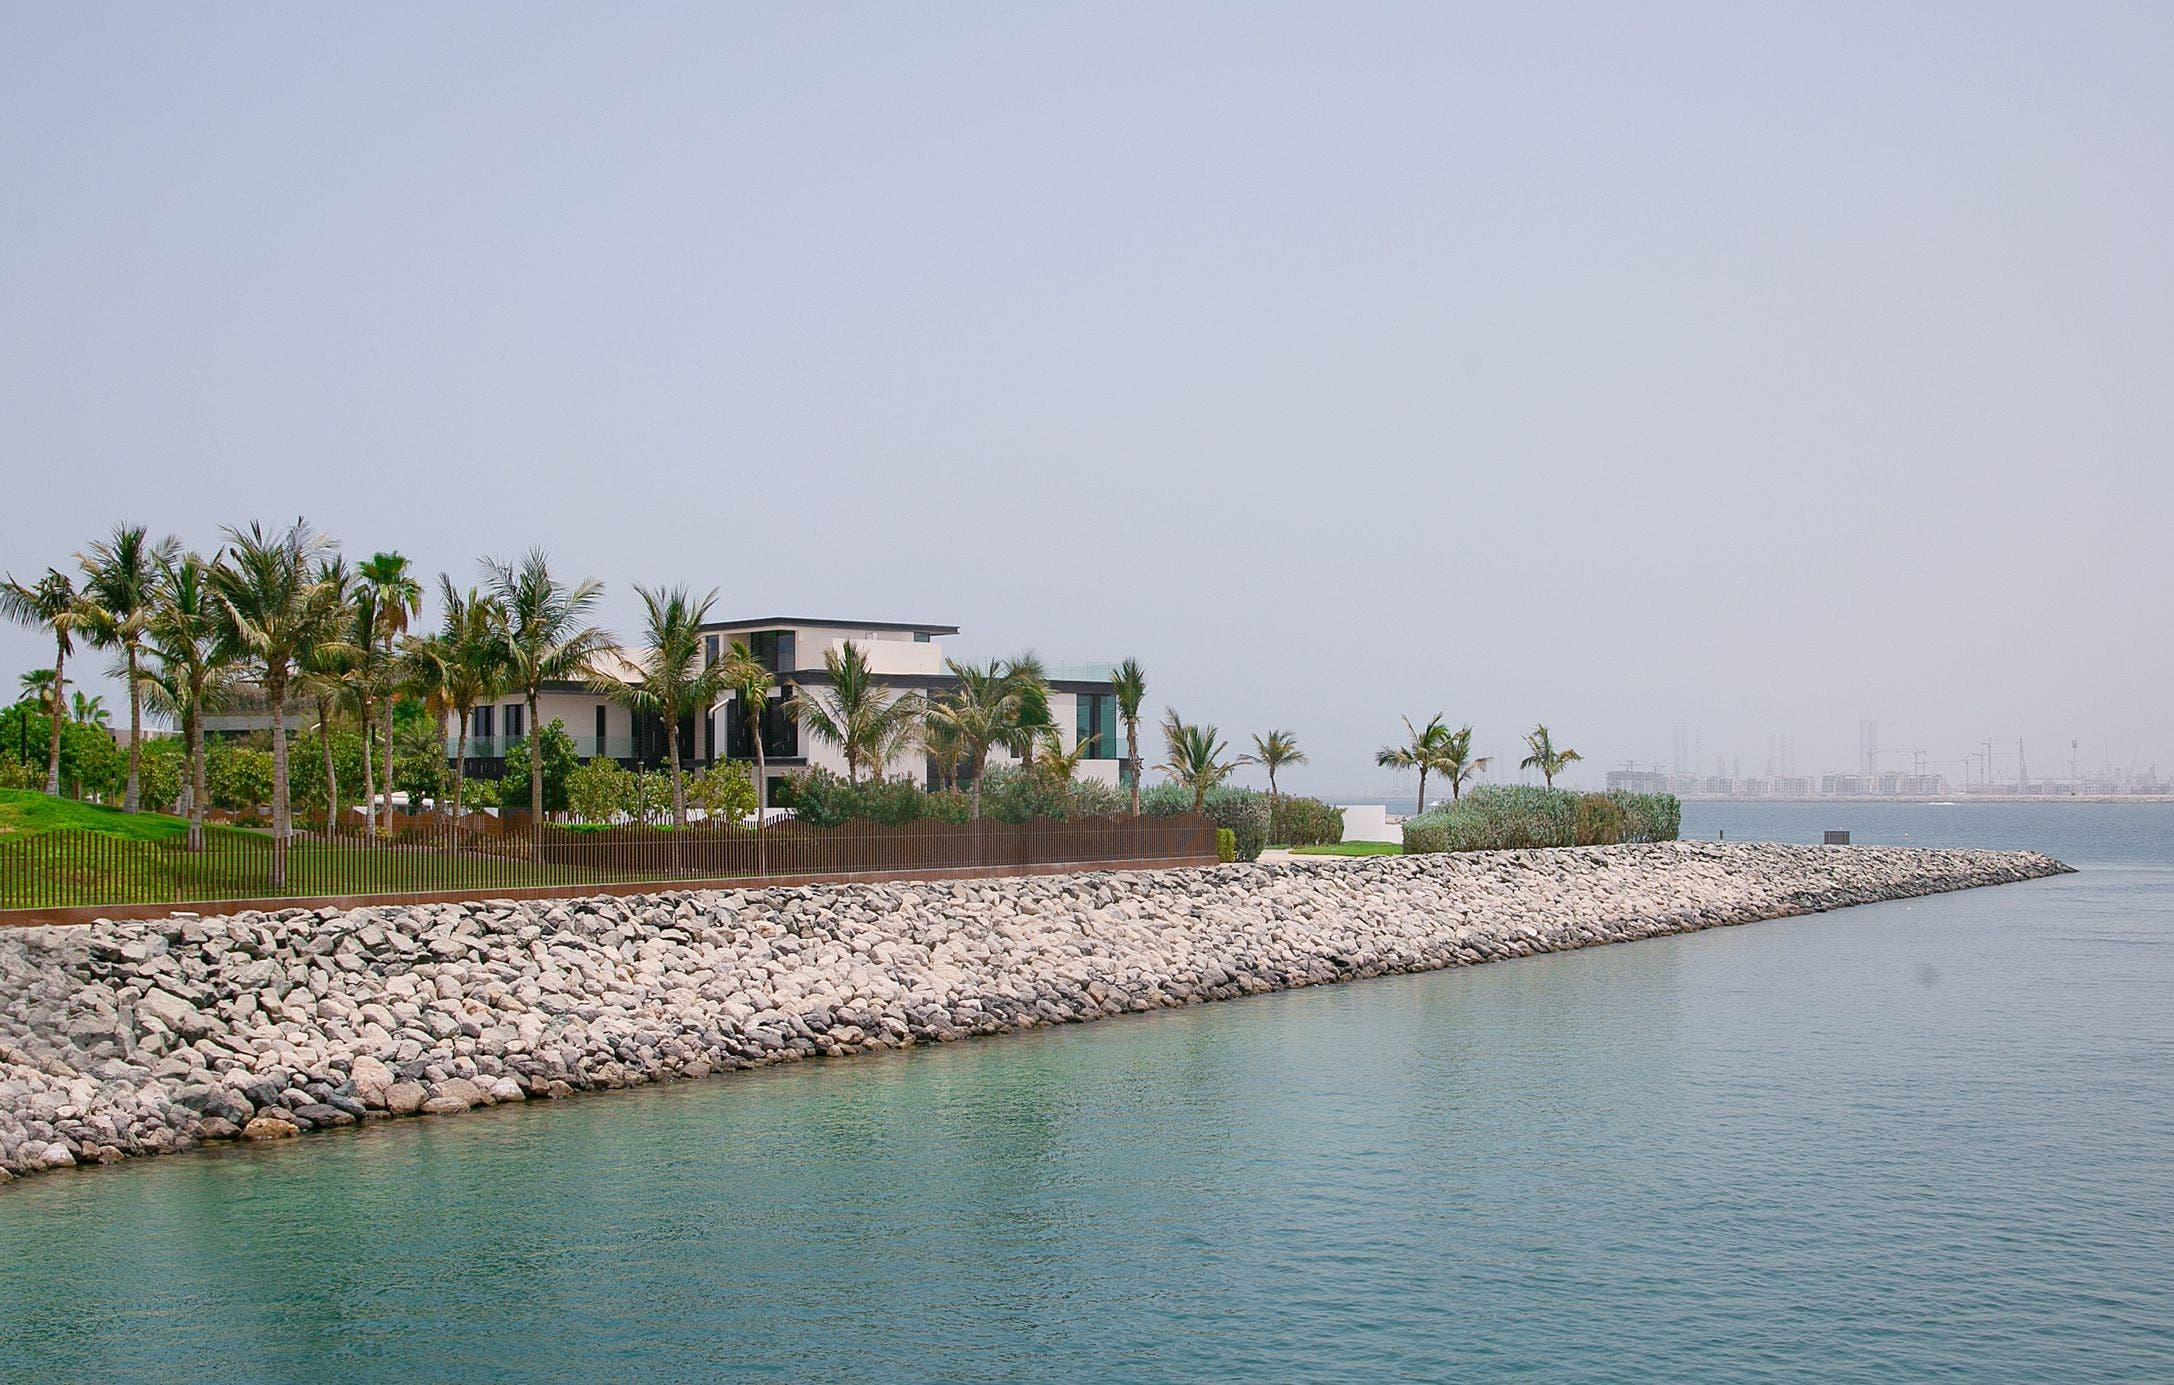 The largest property deal of 2021 was this vast Jumeirah Bay Island mansion which was sold to an unnamed European buyer revealed as a member of the Forbes Top 500 richest people in the world list.  (Supplied: Luxhabitat)